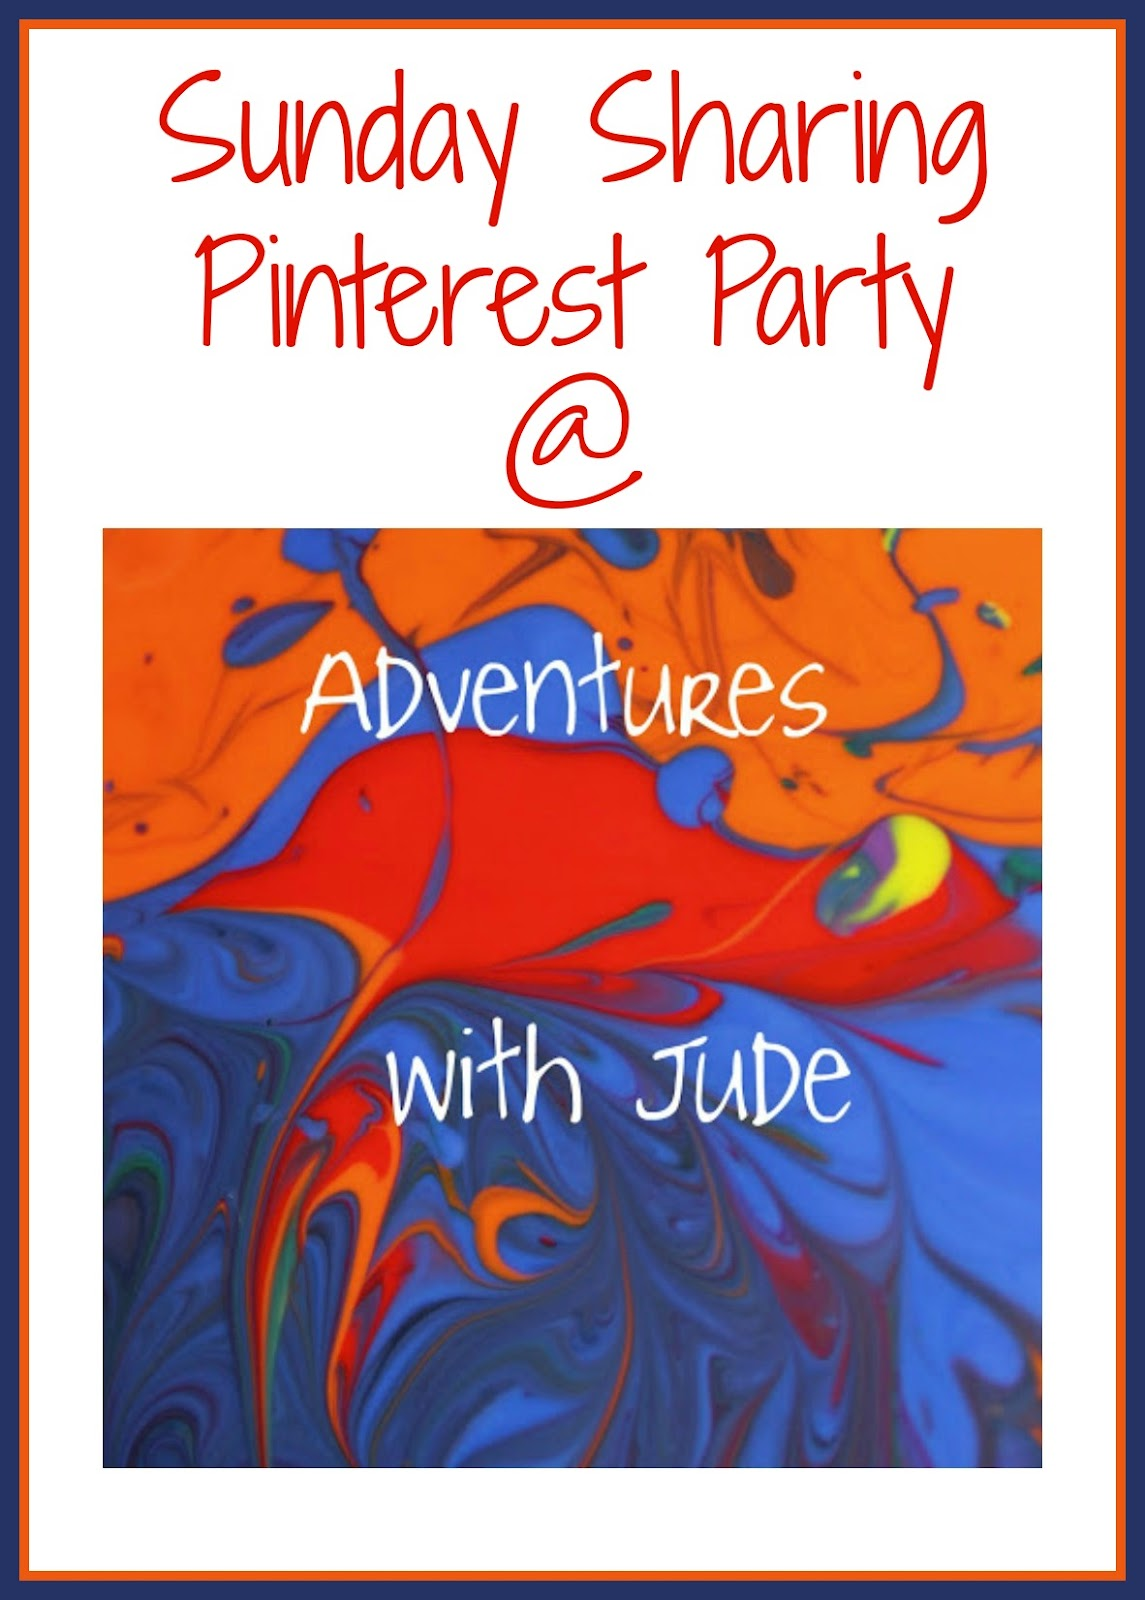 Sunday Sharing Pinterest Party Adventures with Jude